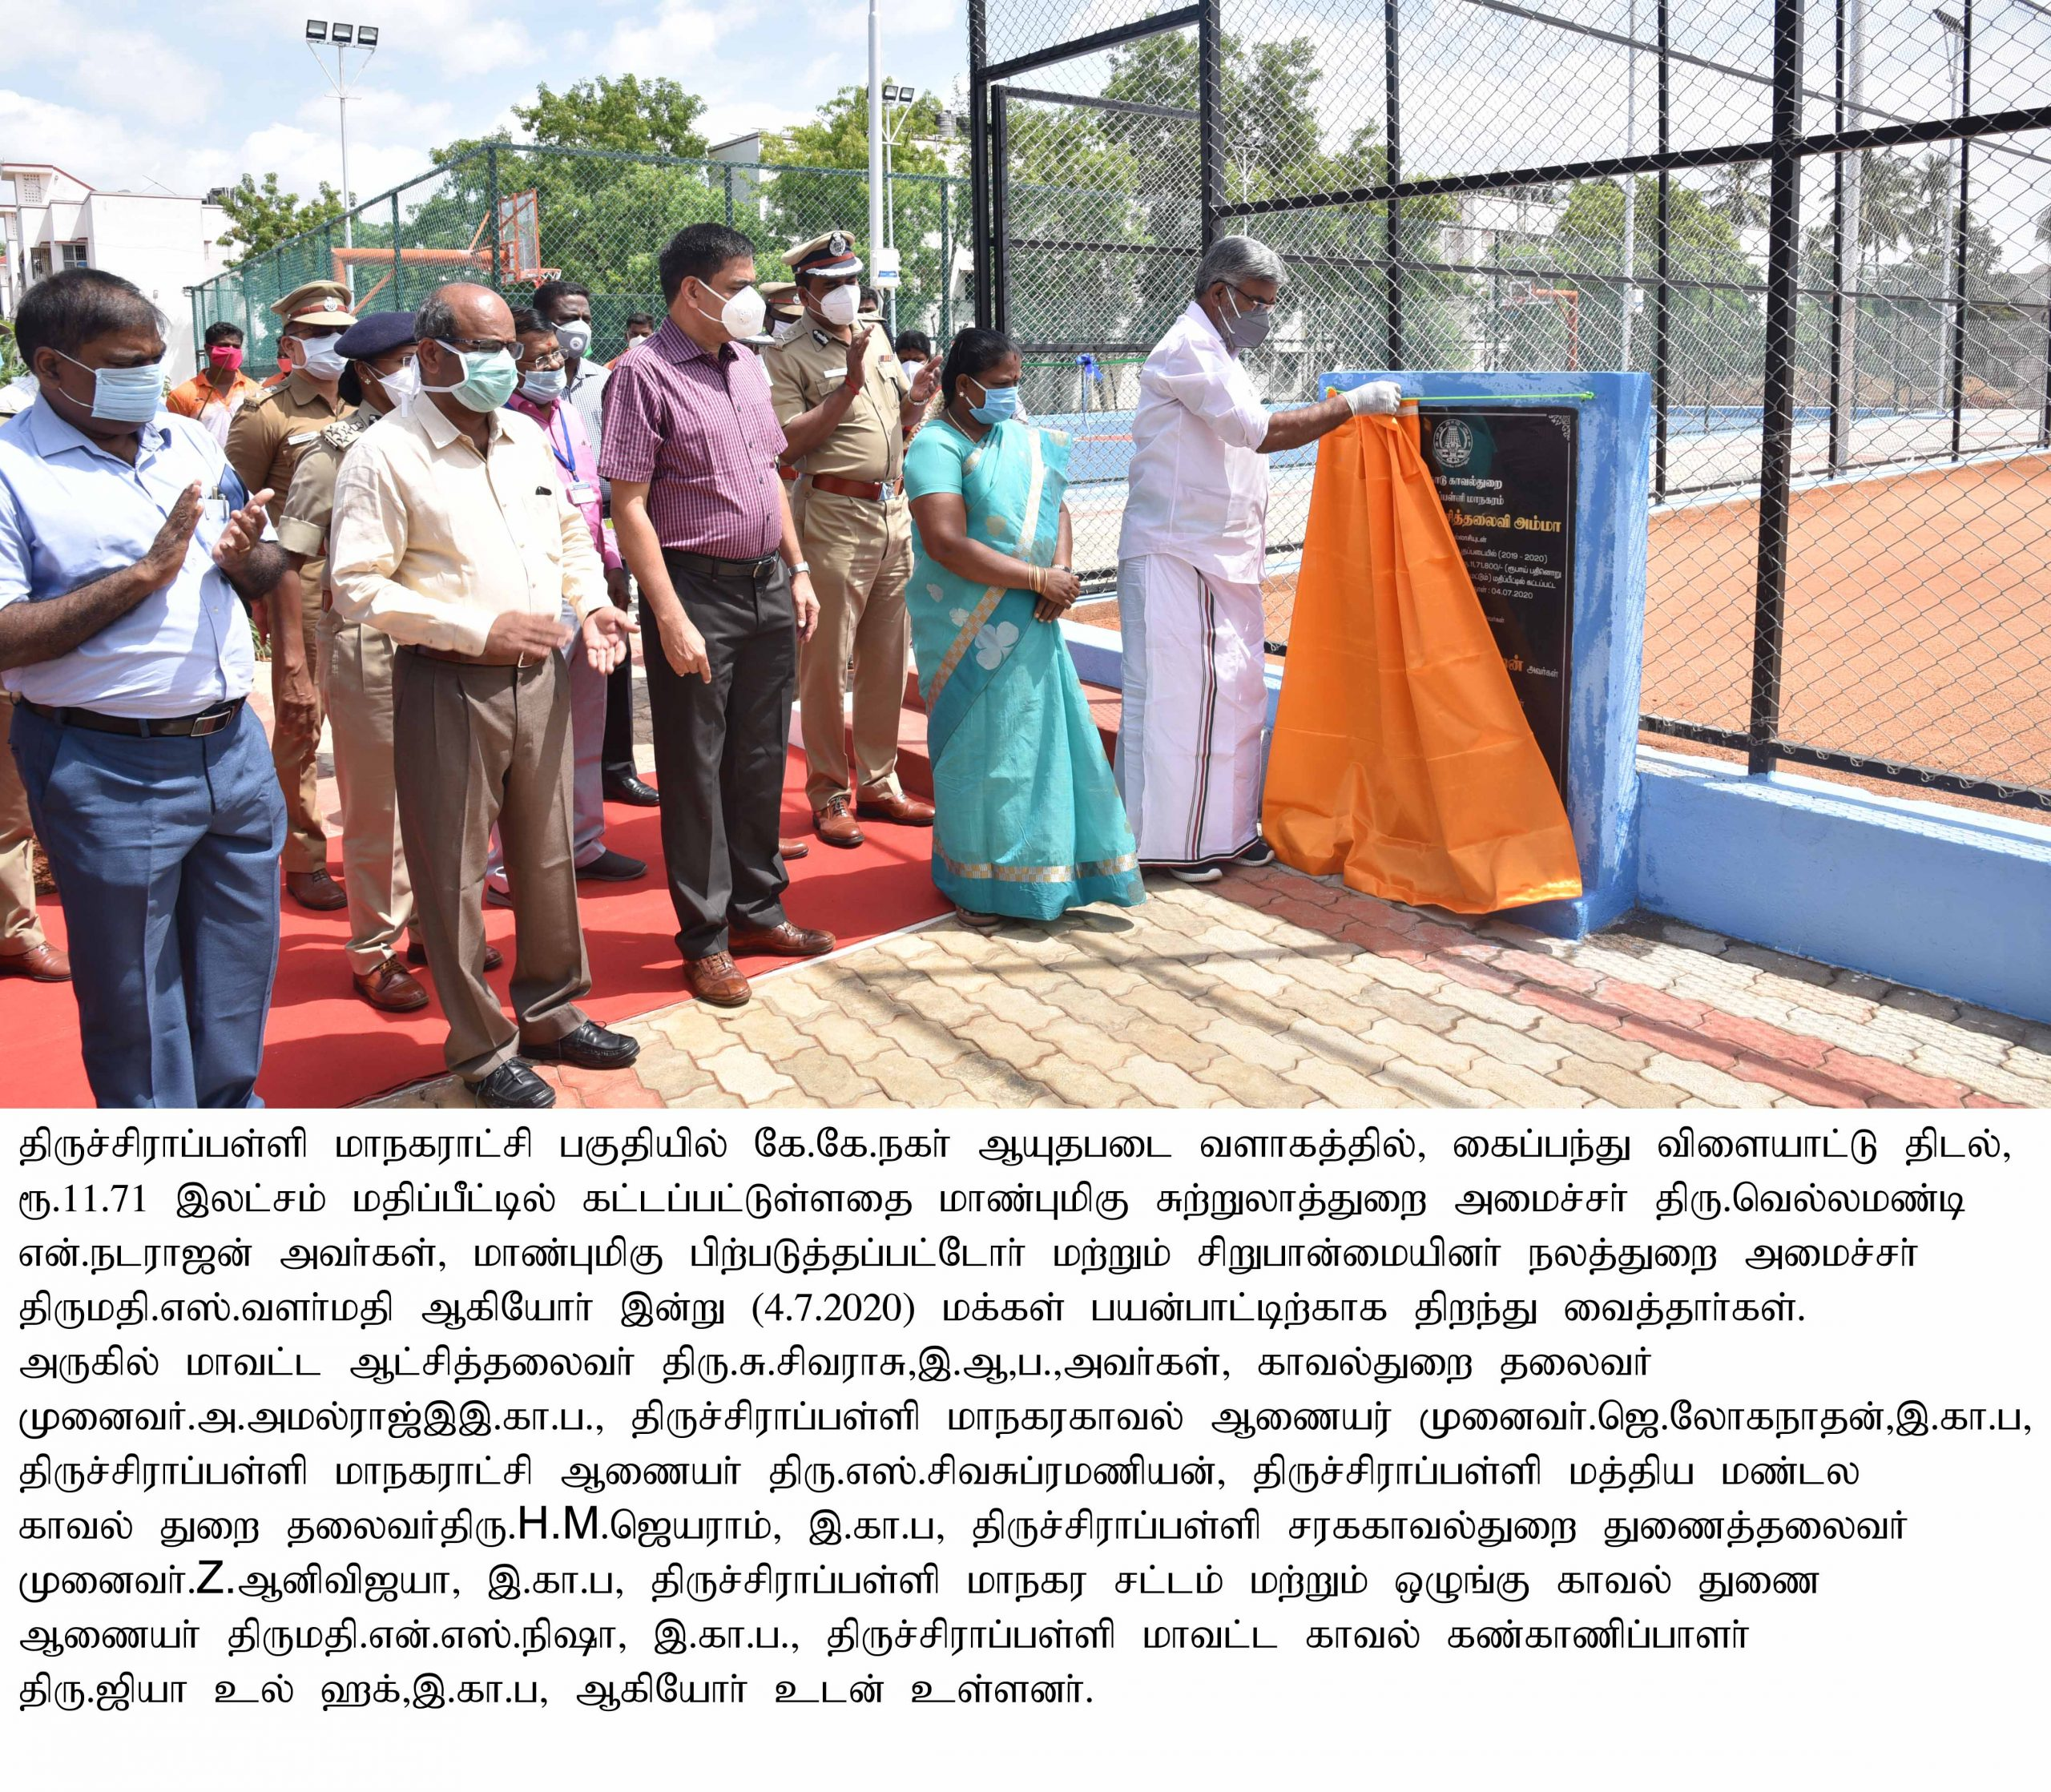 Honorable Ministers inaugurated the Volleyball Court and Traffic Island at the KK Nagar Armed Forces Complex